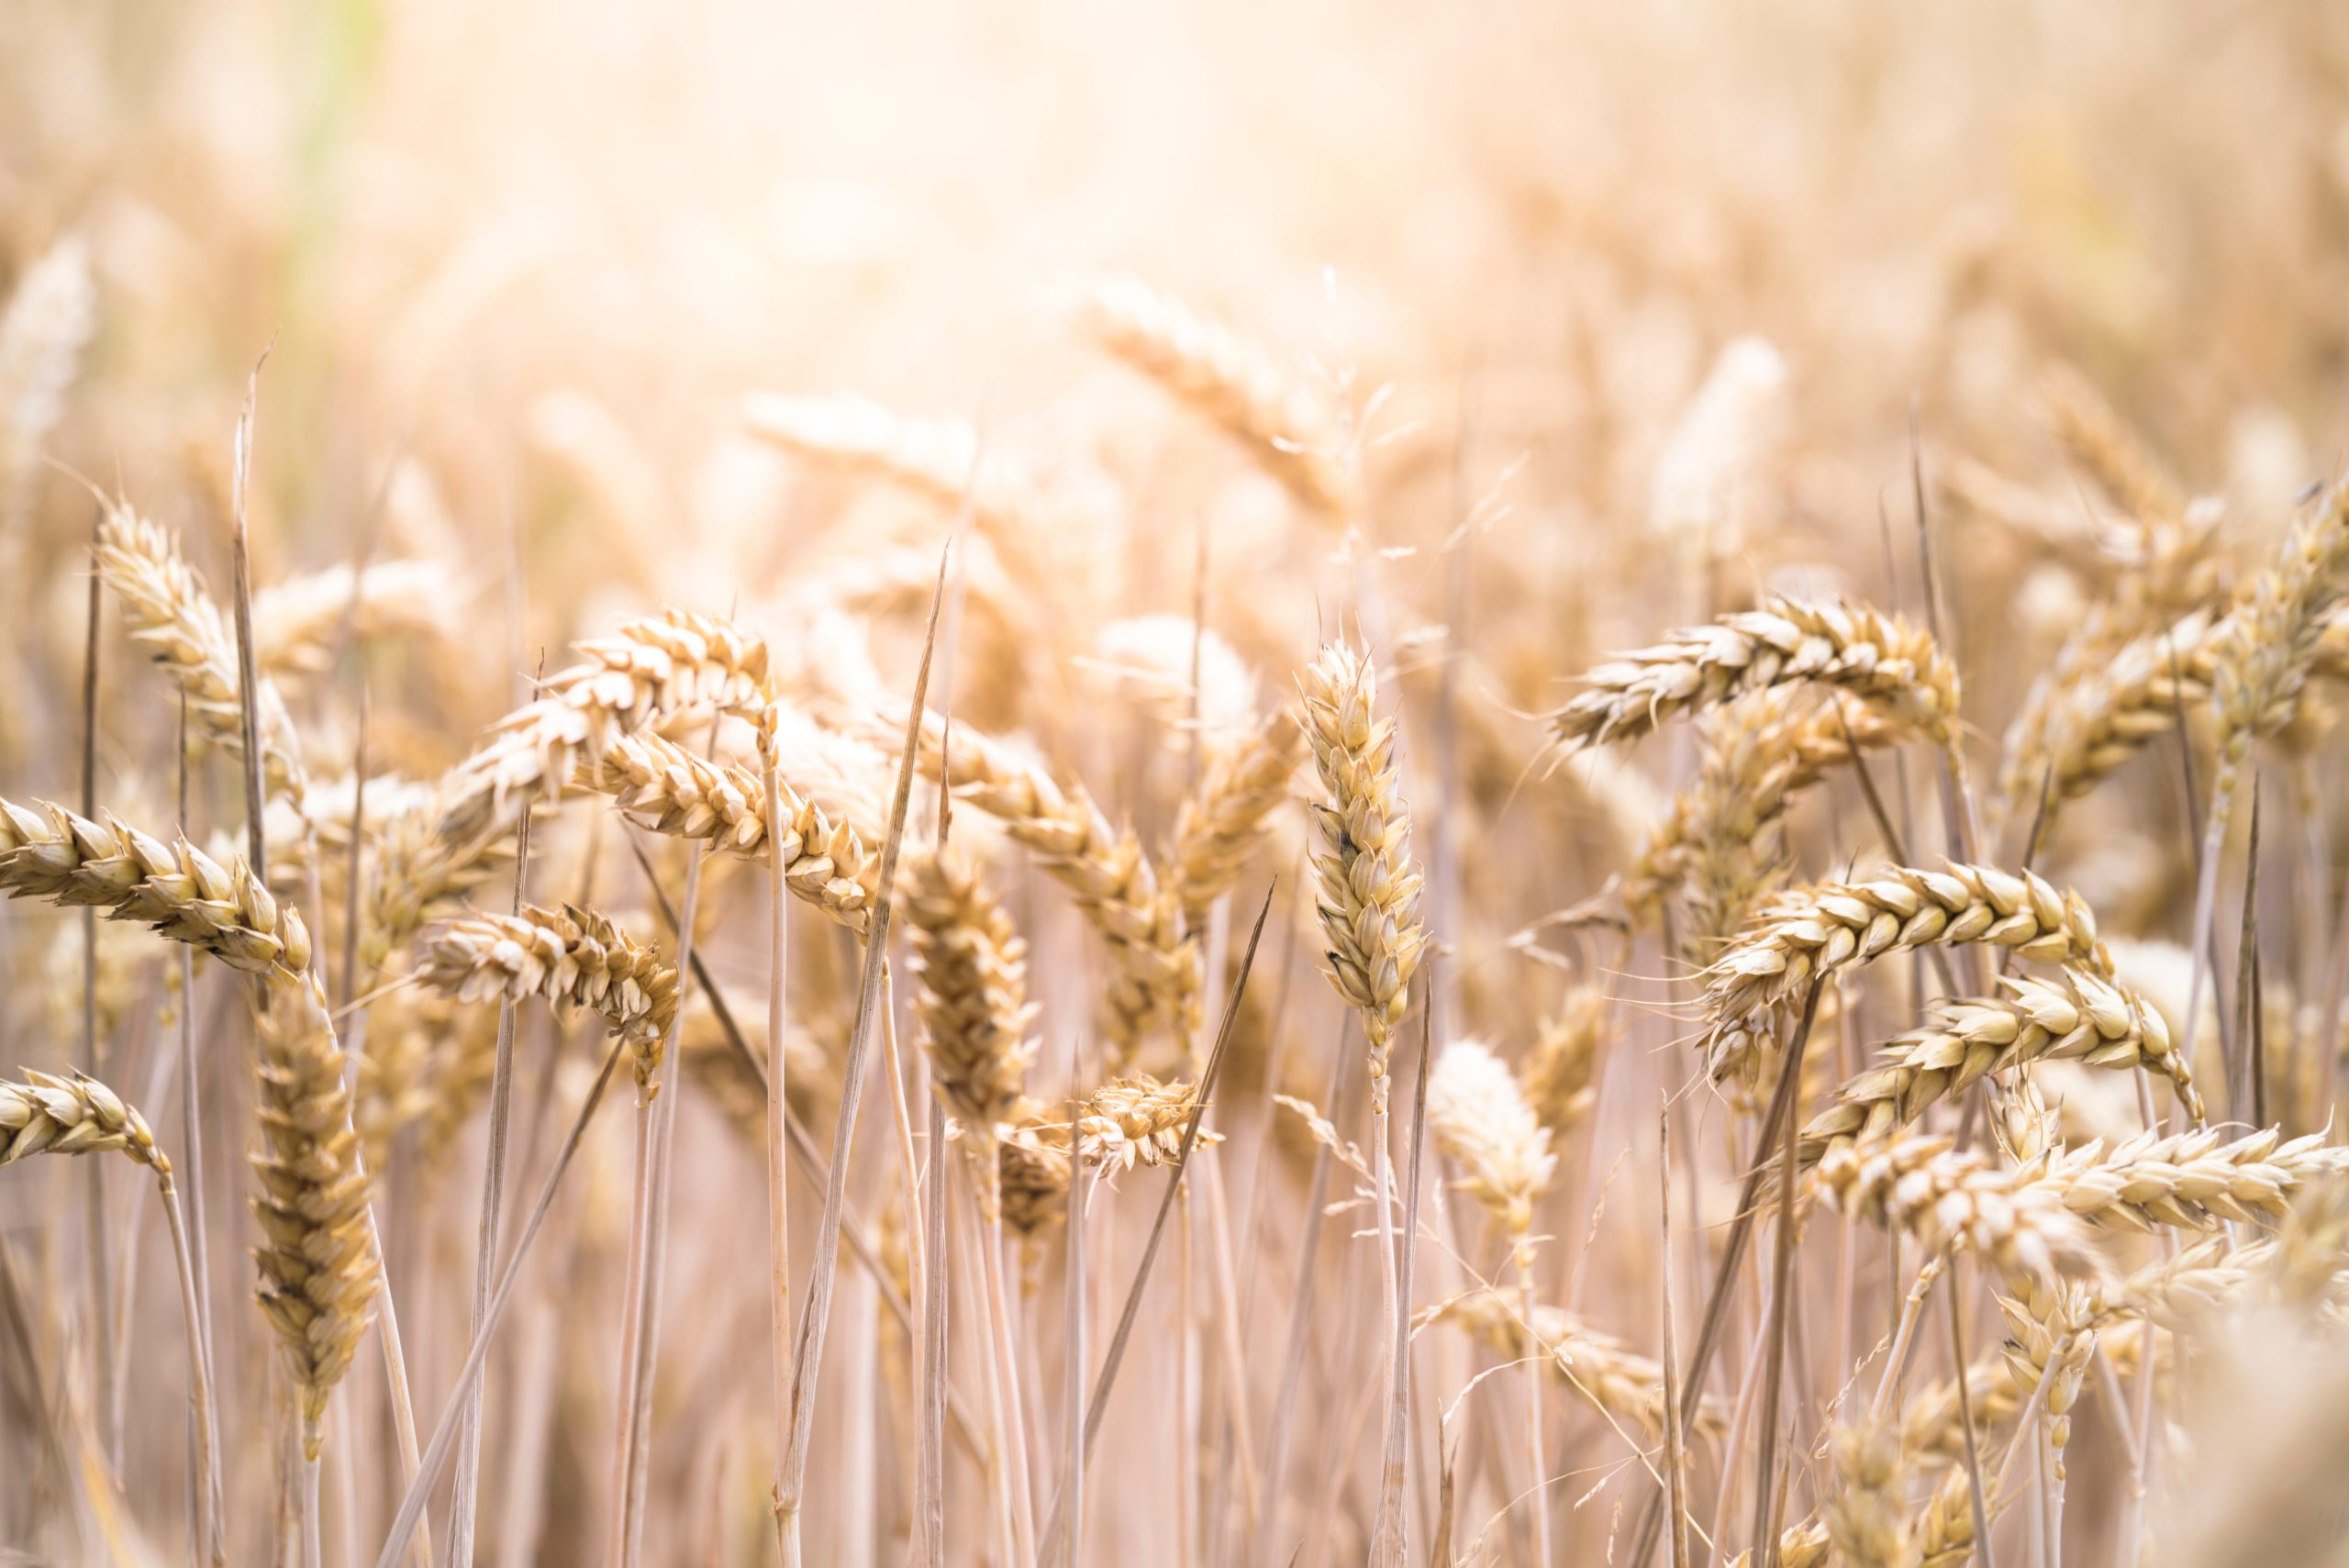 So, What's the Deal with Wheat?